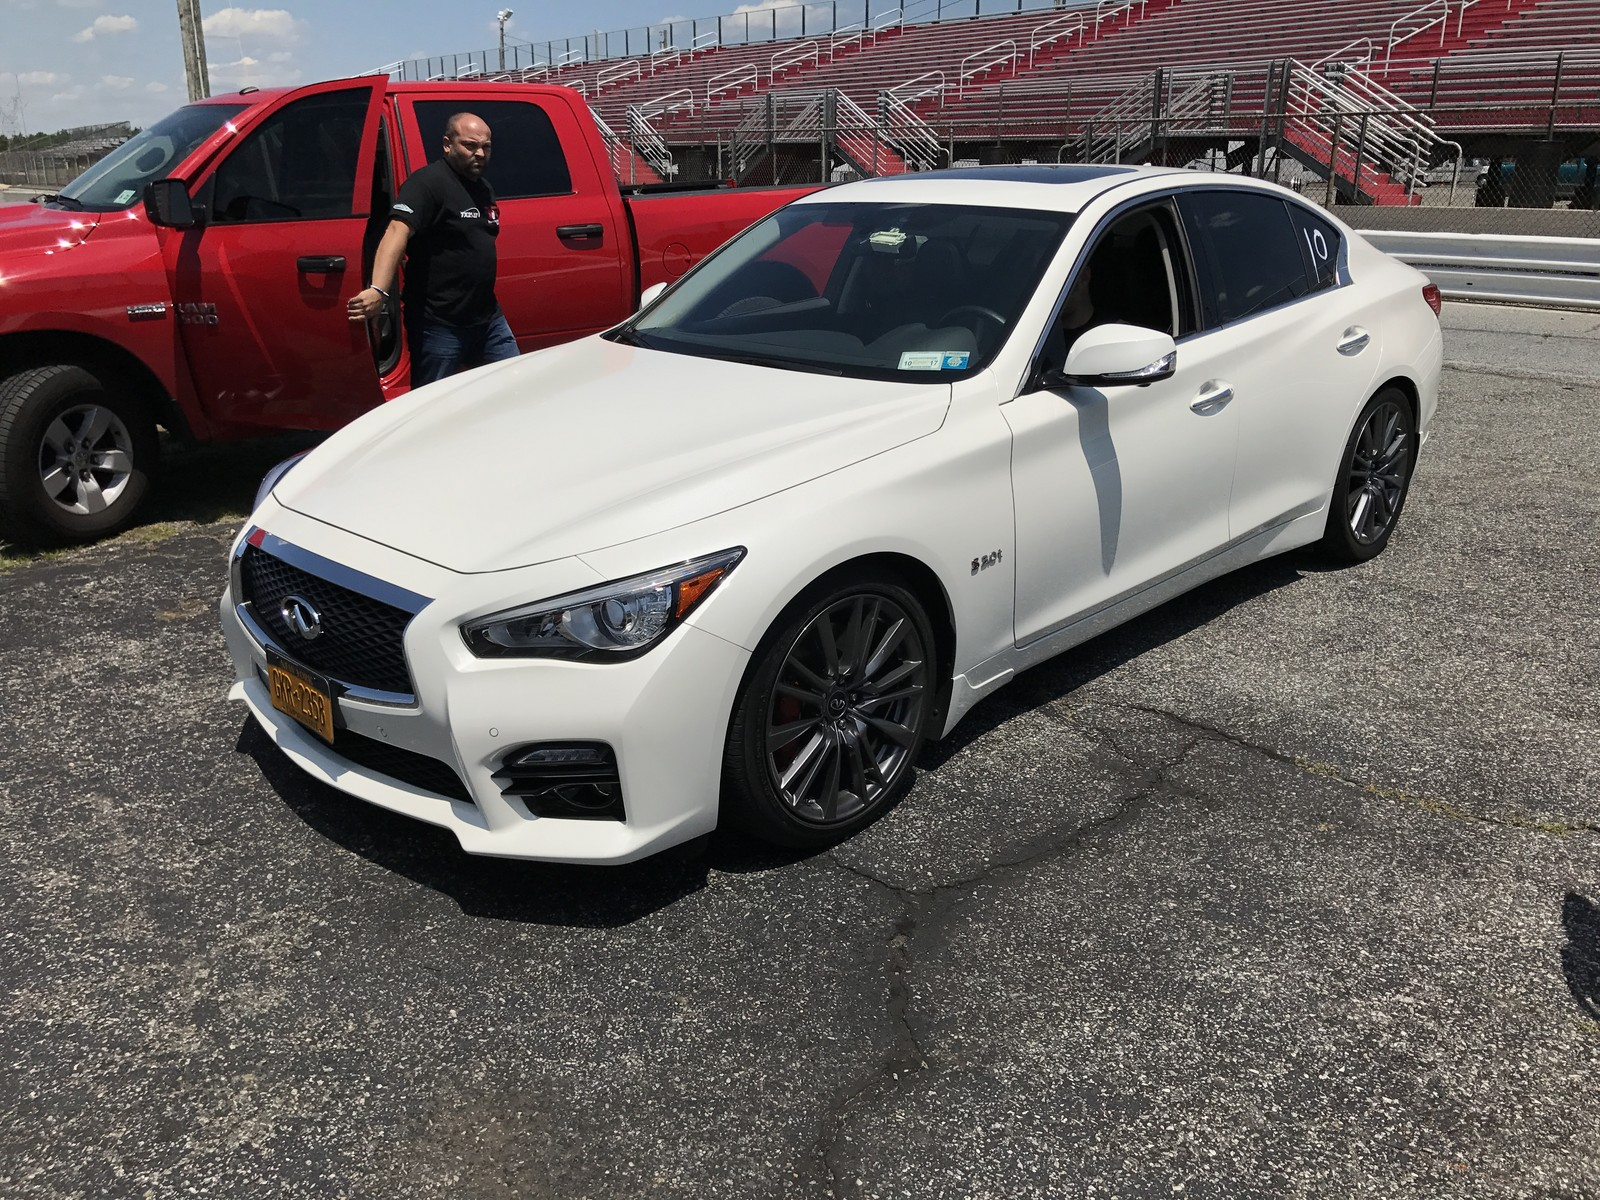 Q50 For Sale >> 2017 Infiniti Q50 Red Sport 1/4 mile Drag Racing timeslip specs 0-60 - DragTimes.com